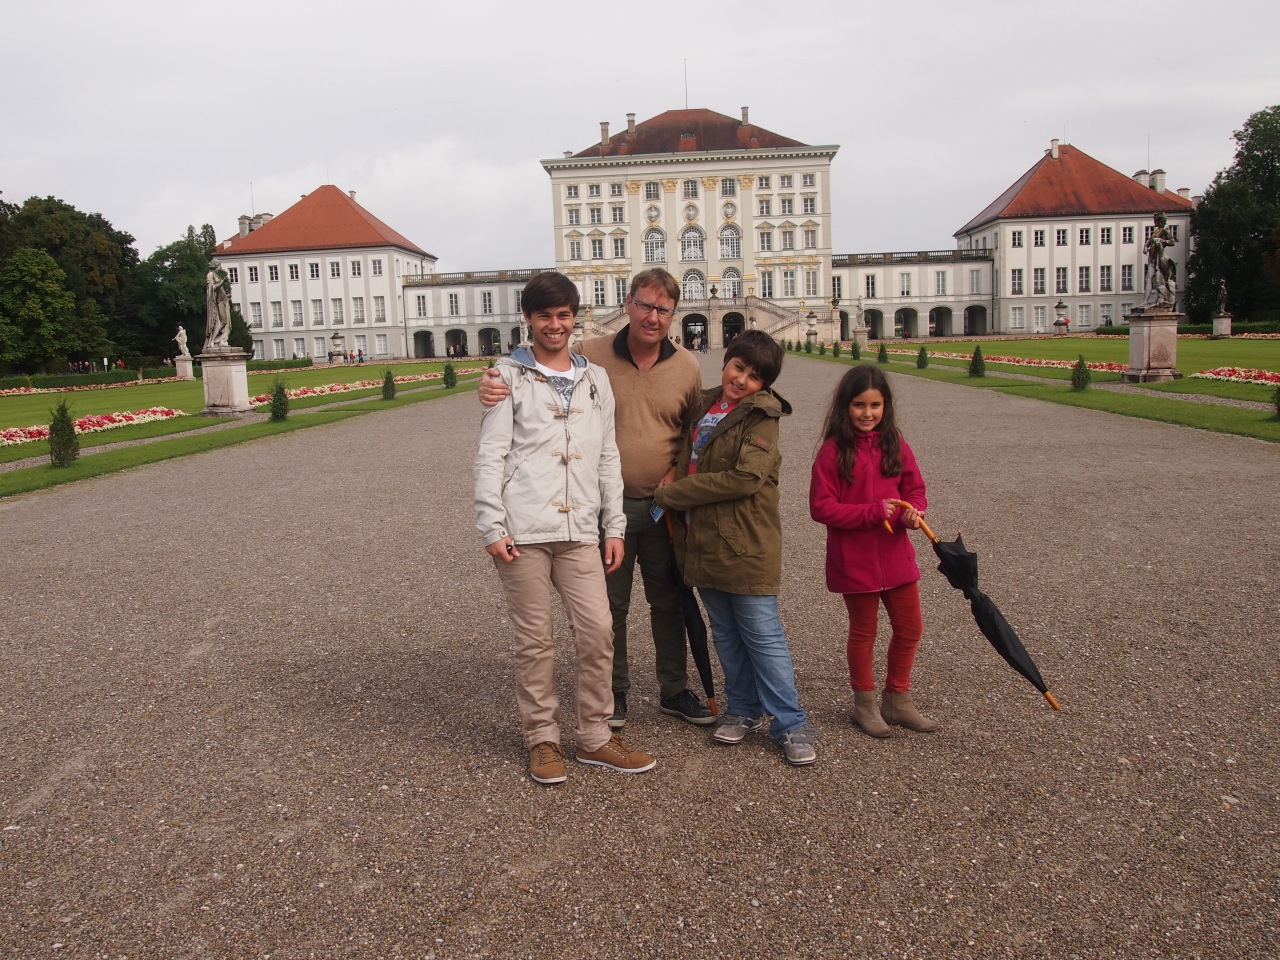 Germany – Munich, the land of the whitesausage